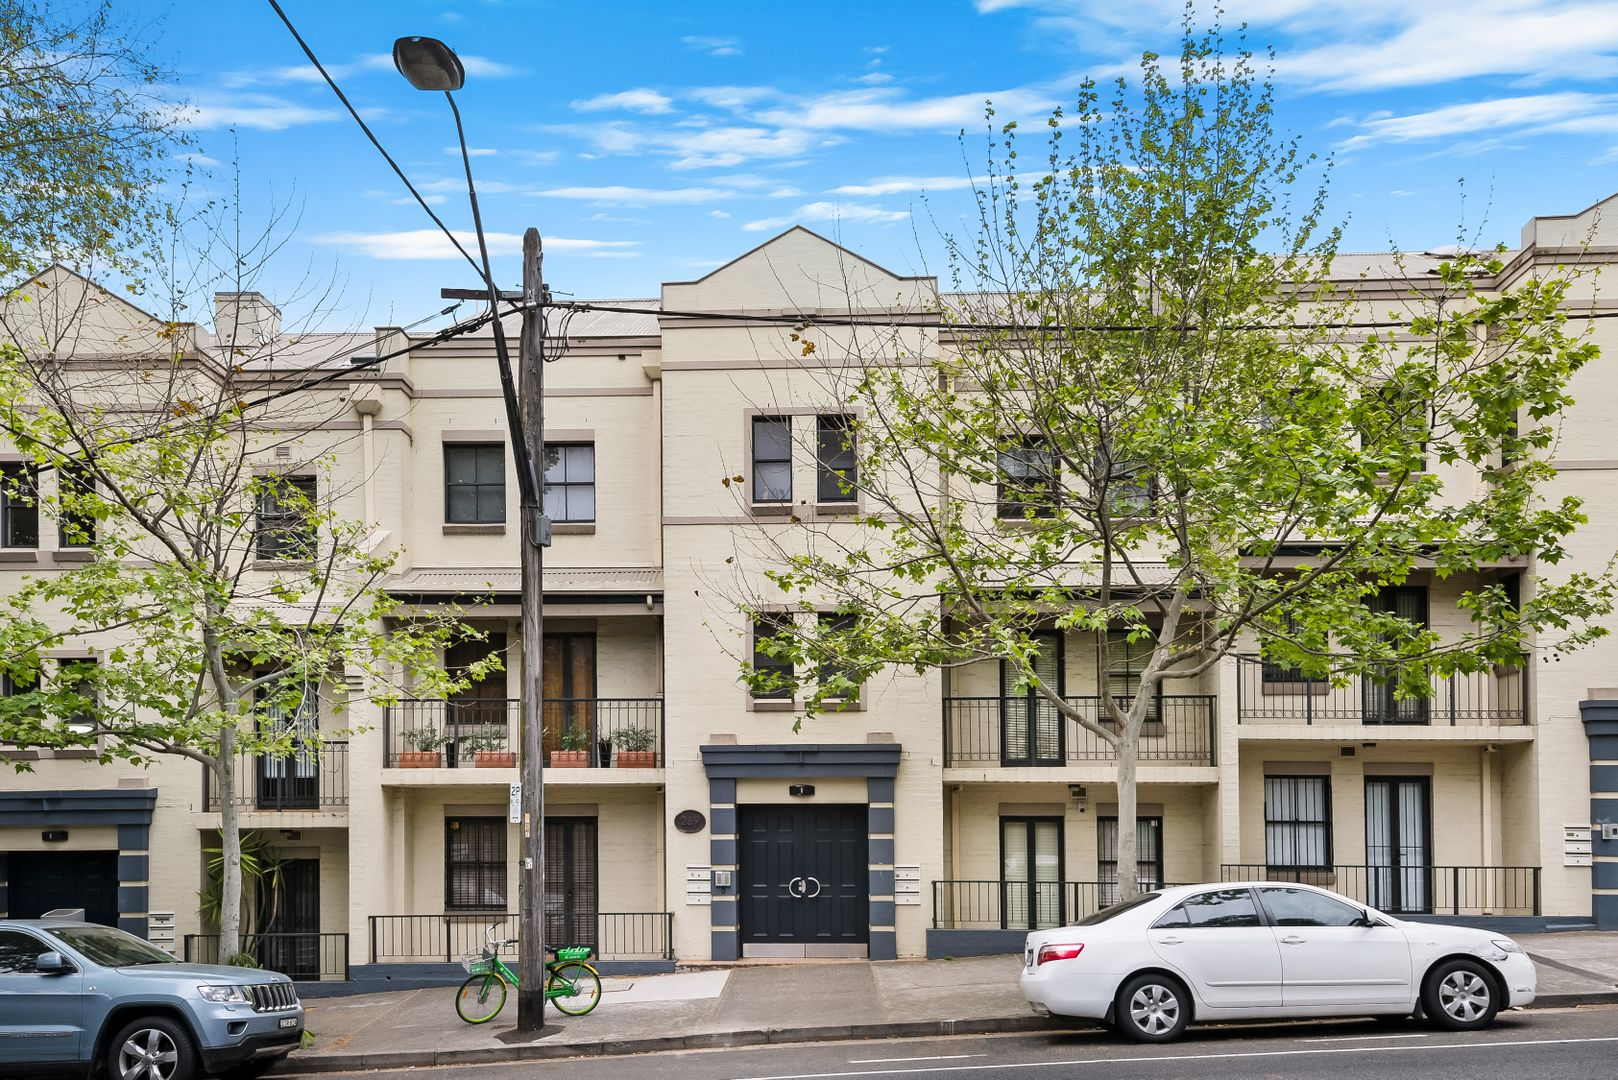 17/269 - 277 Riley Street, Surry Hills NSW 2010, Image 0